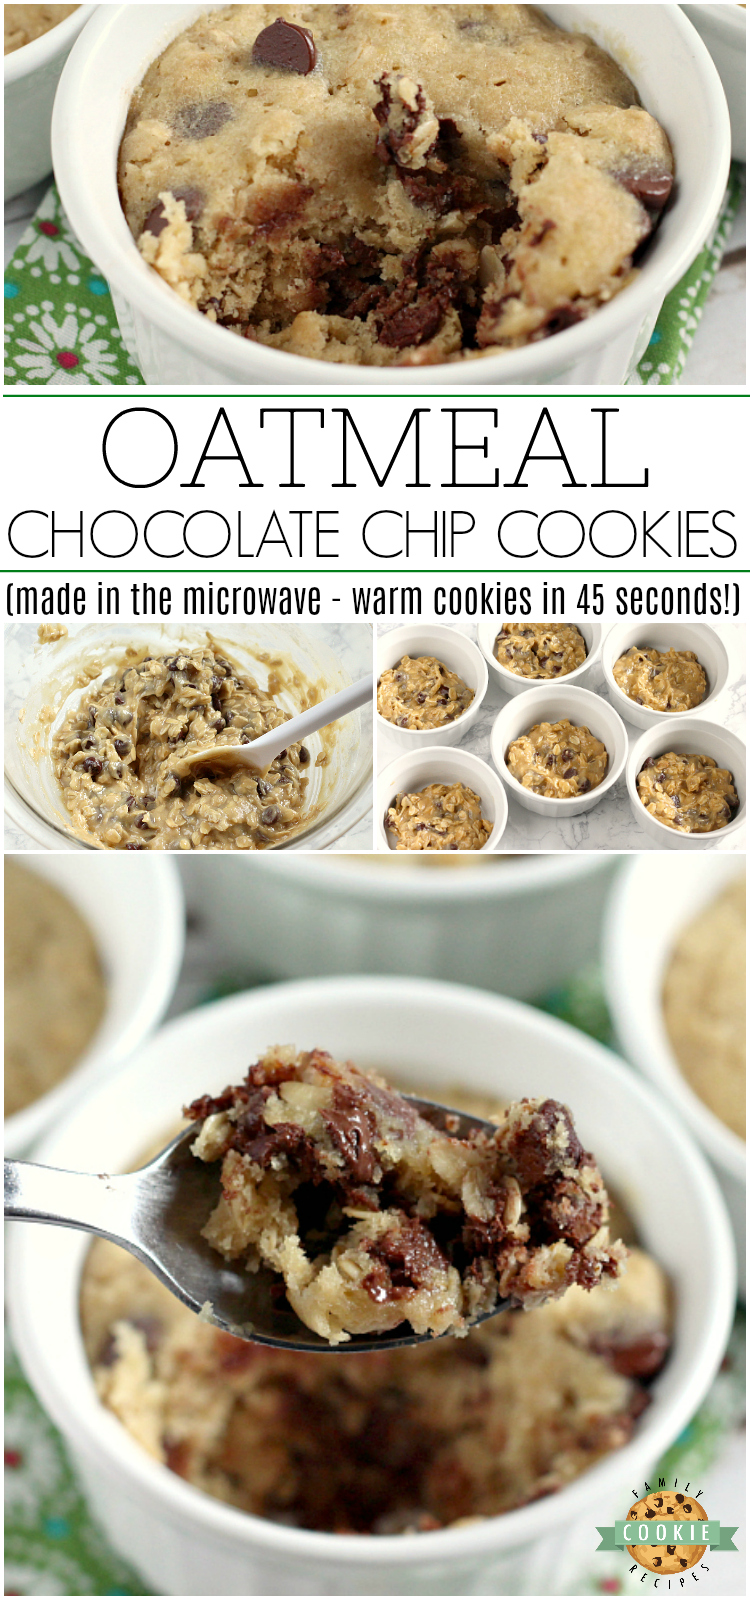 Oatmeal Chocolate Chip Cookies that are ready in less than 5 minutes! This basic oatmeal chocolate chip cookie recipe makes six soft and chewy mug cookies in the microwave - no oven required!